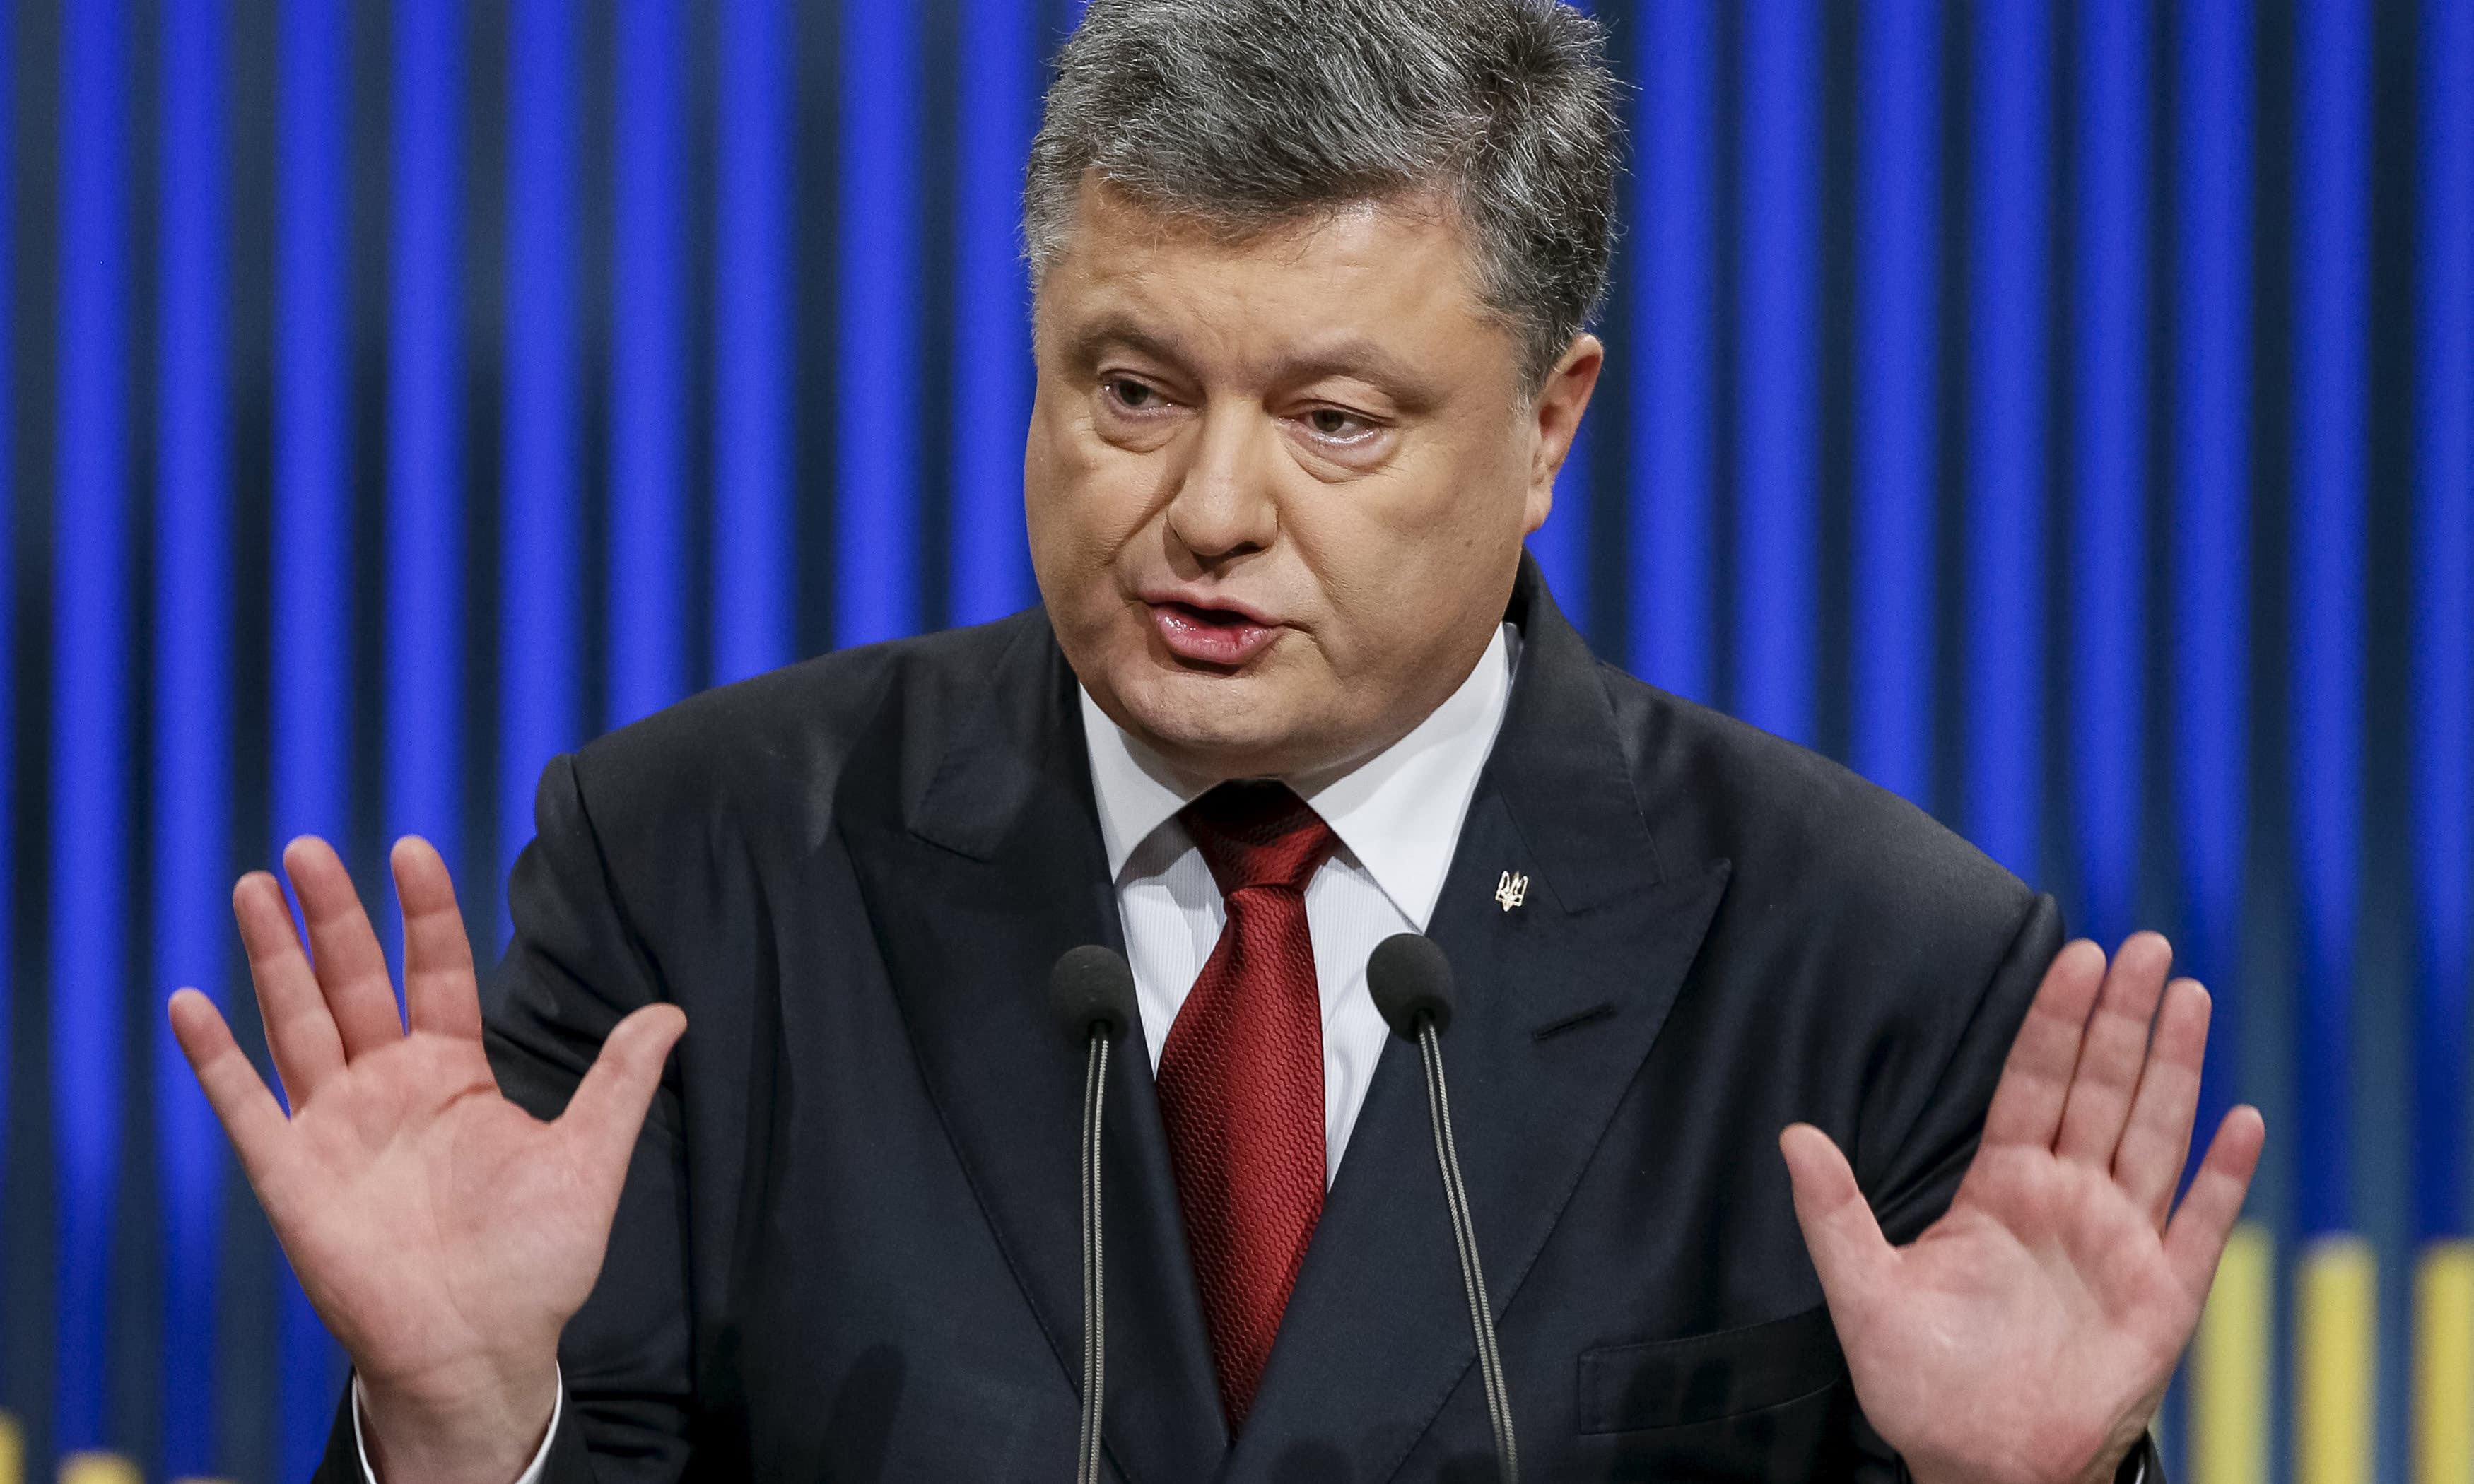 Poroshenko reportedly set up an offshore company to move his confectionery business. —Reuters